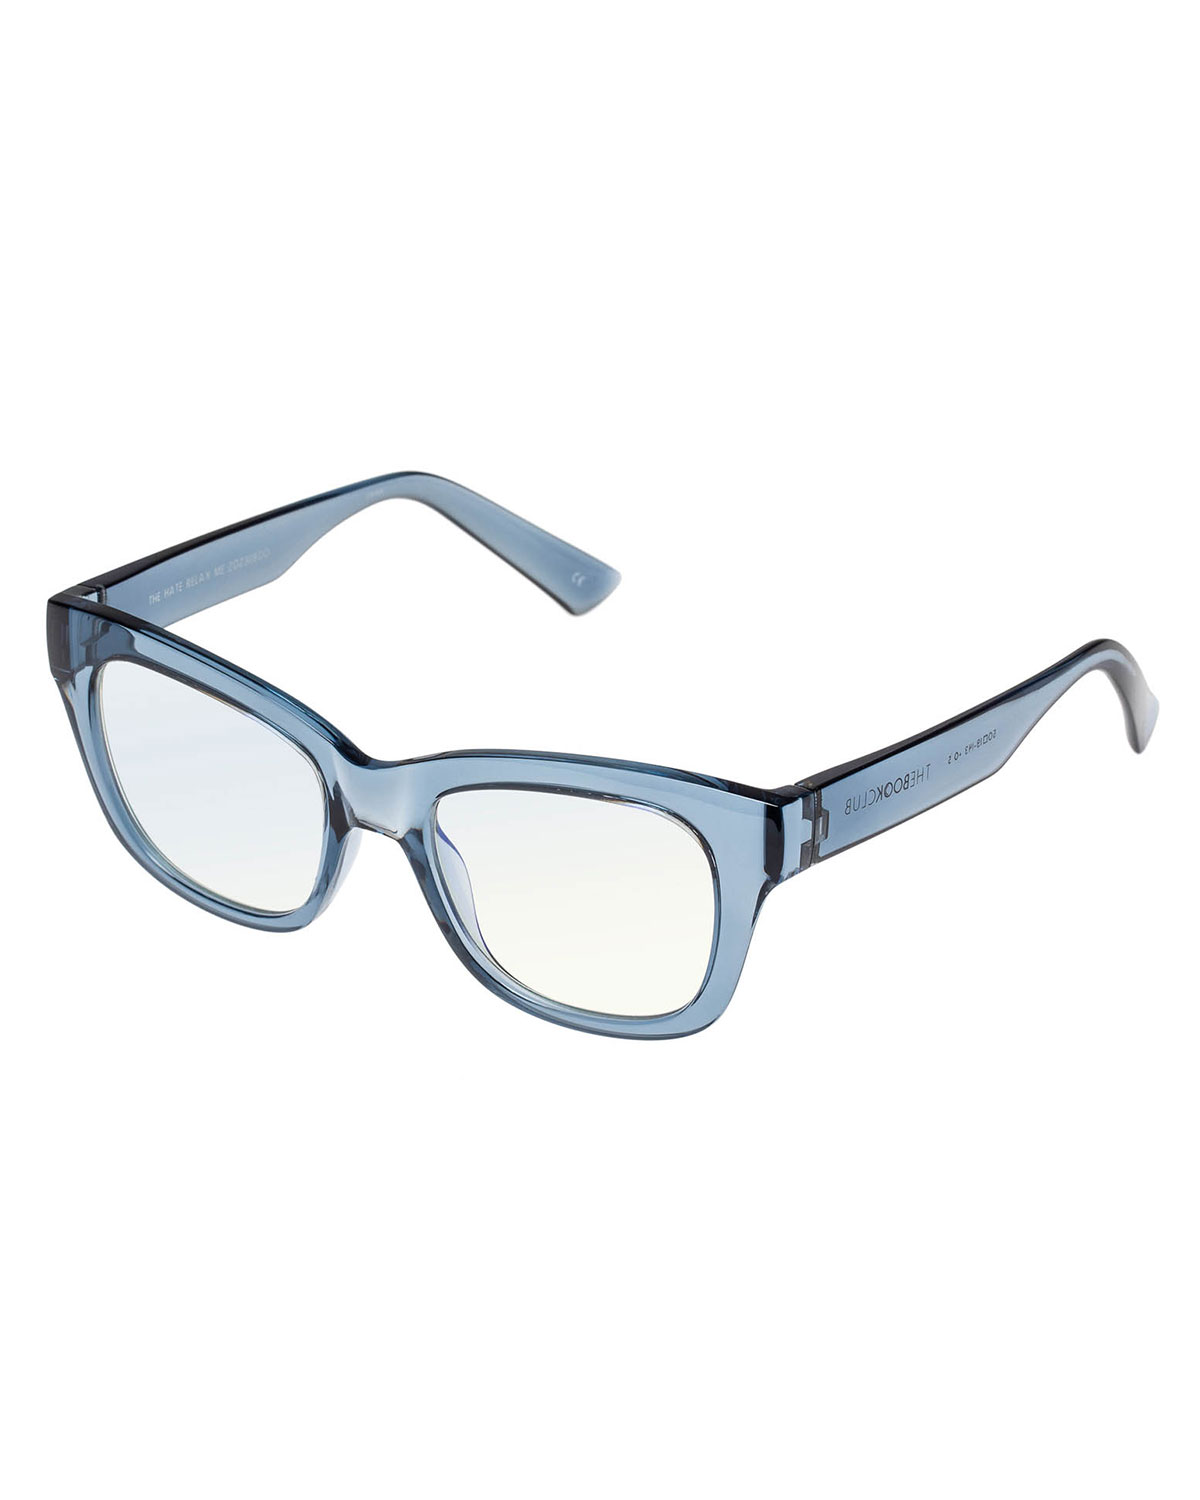 The Hate Relax Me Square Plastic Reading Glasses